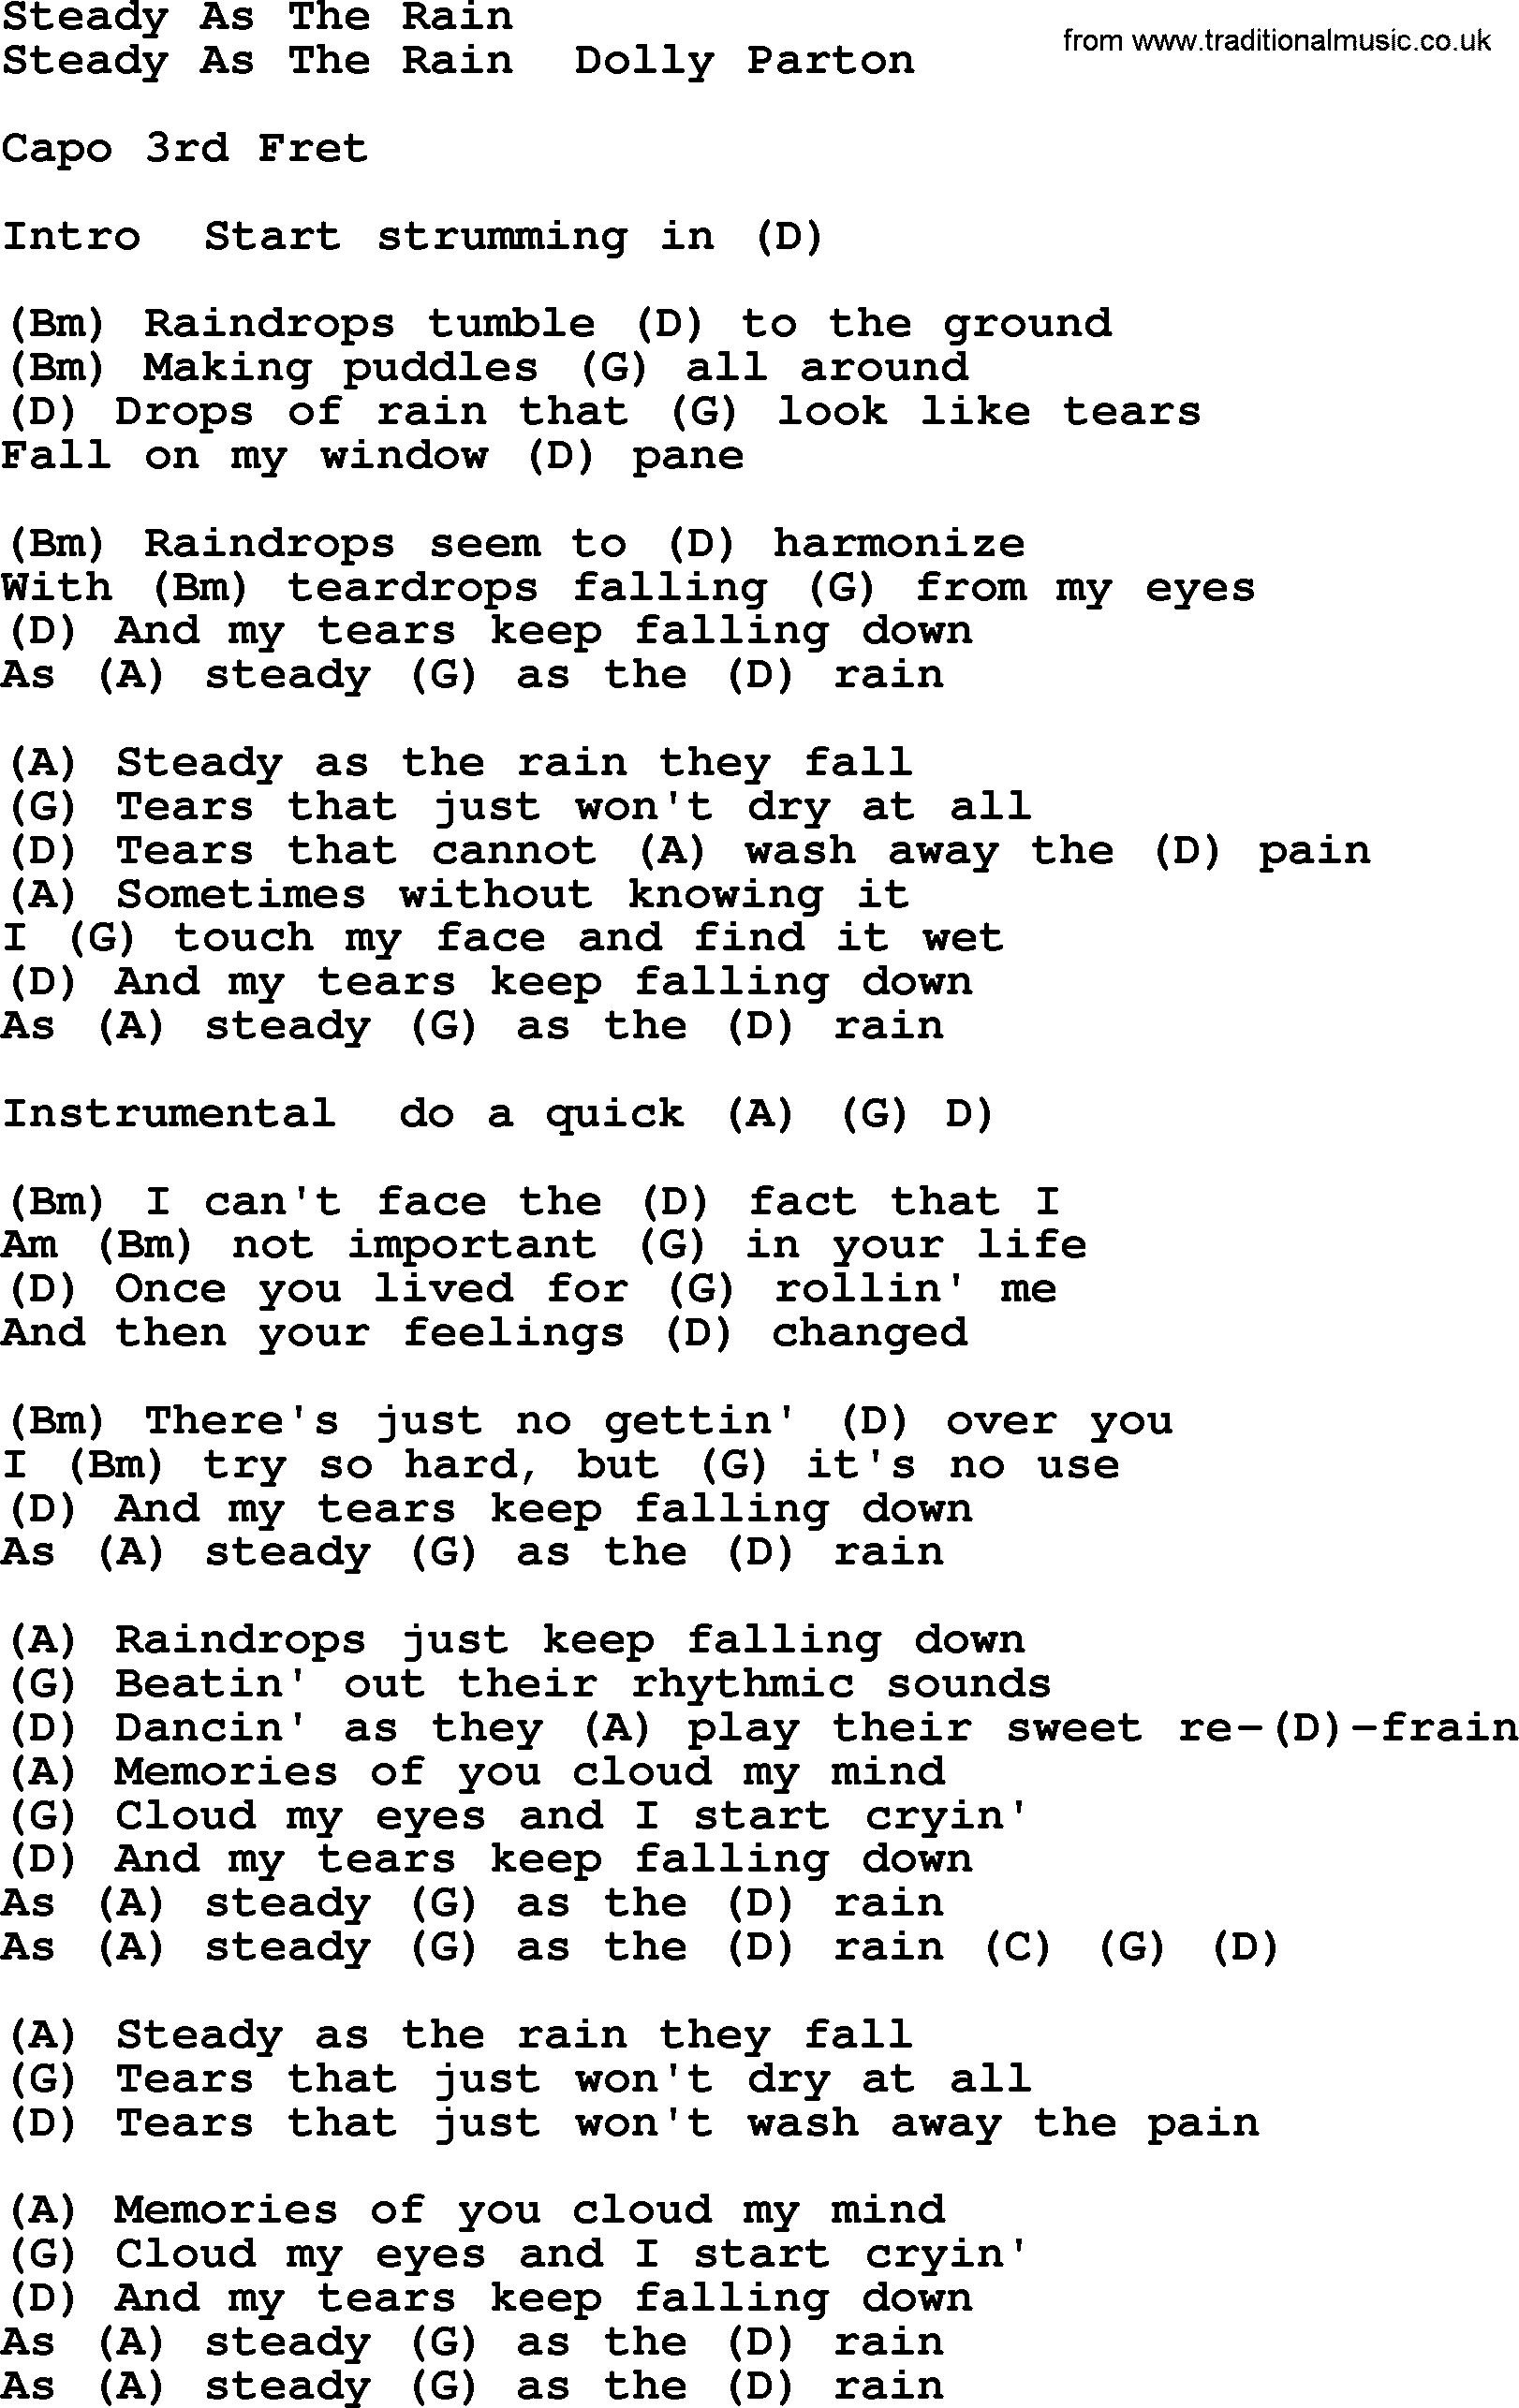 the rain song tab pdf